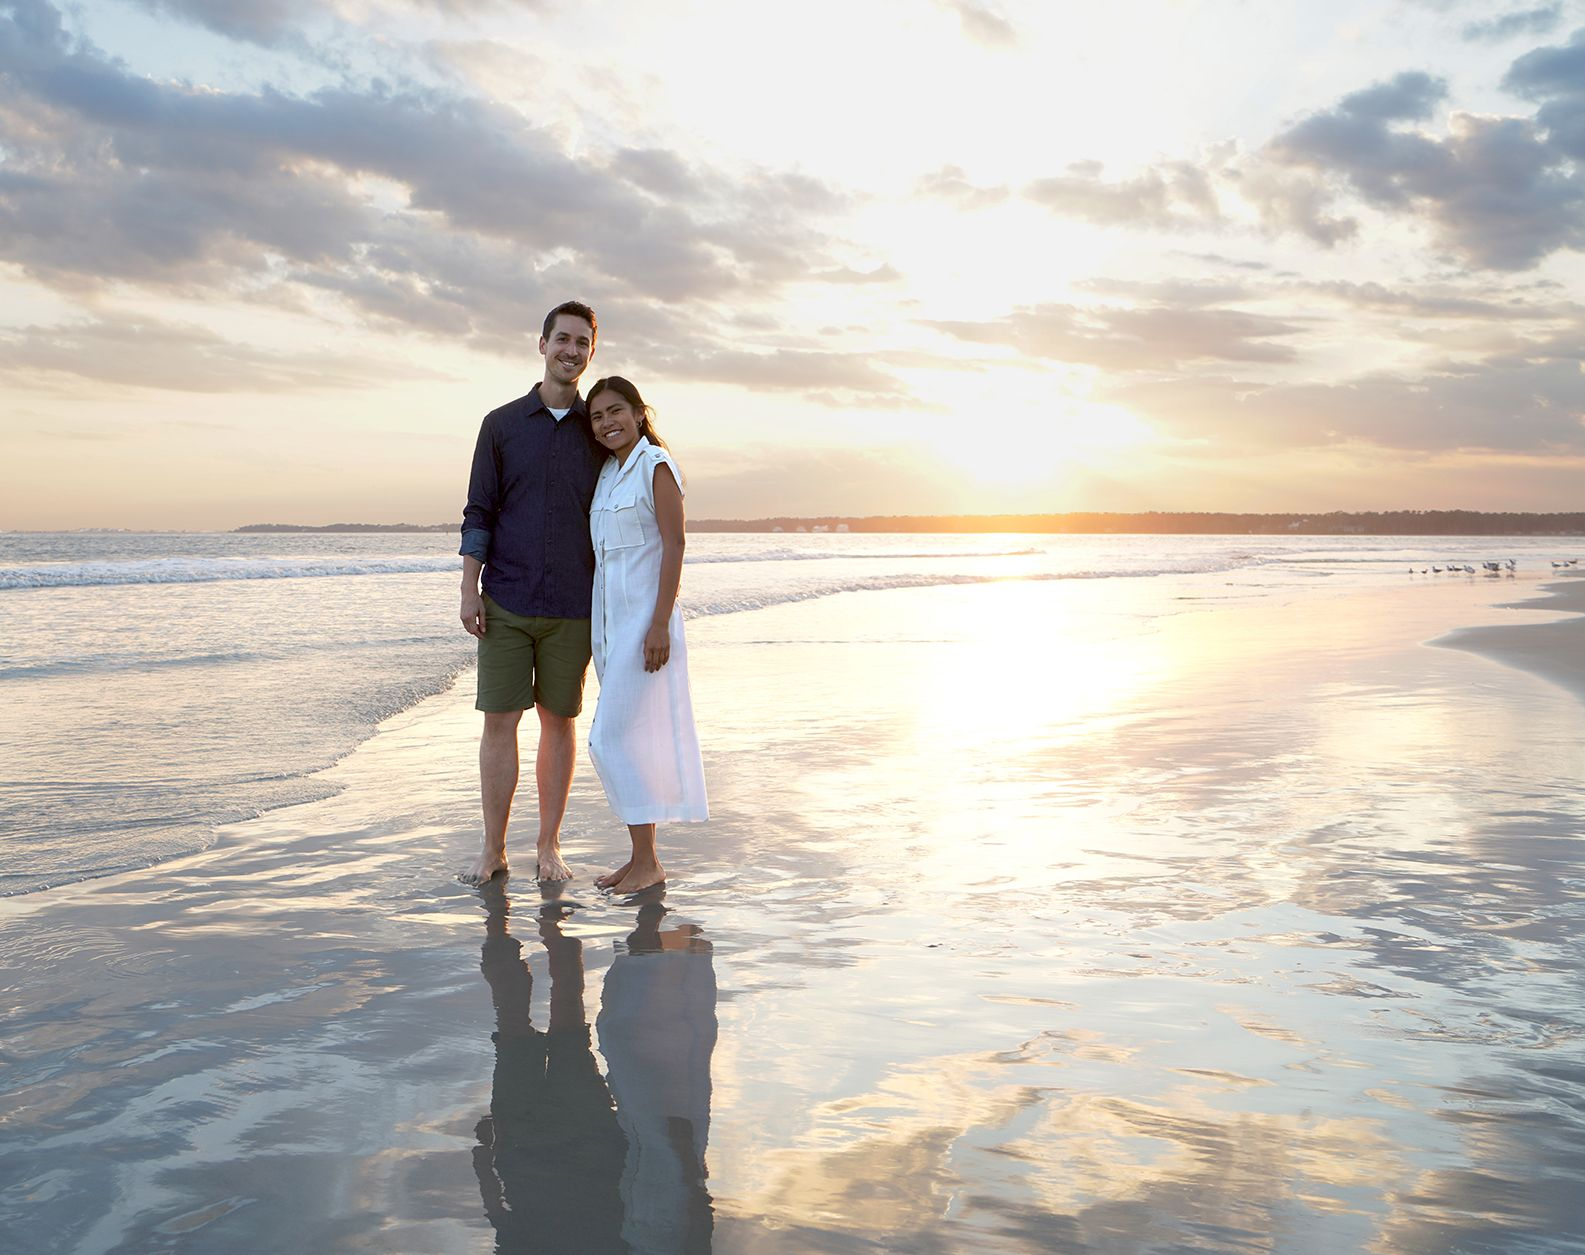 Sunset Beach Engagement In 2020